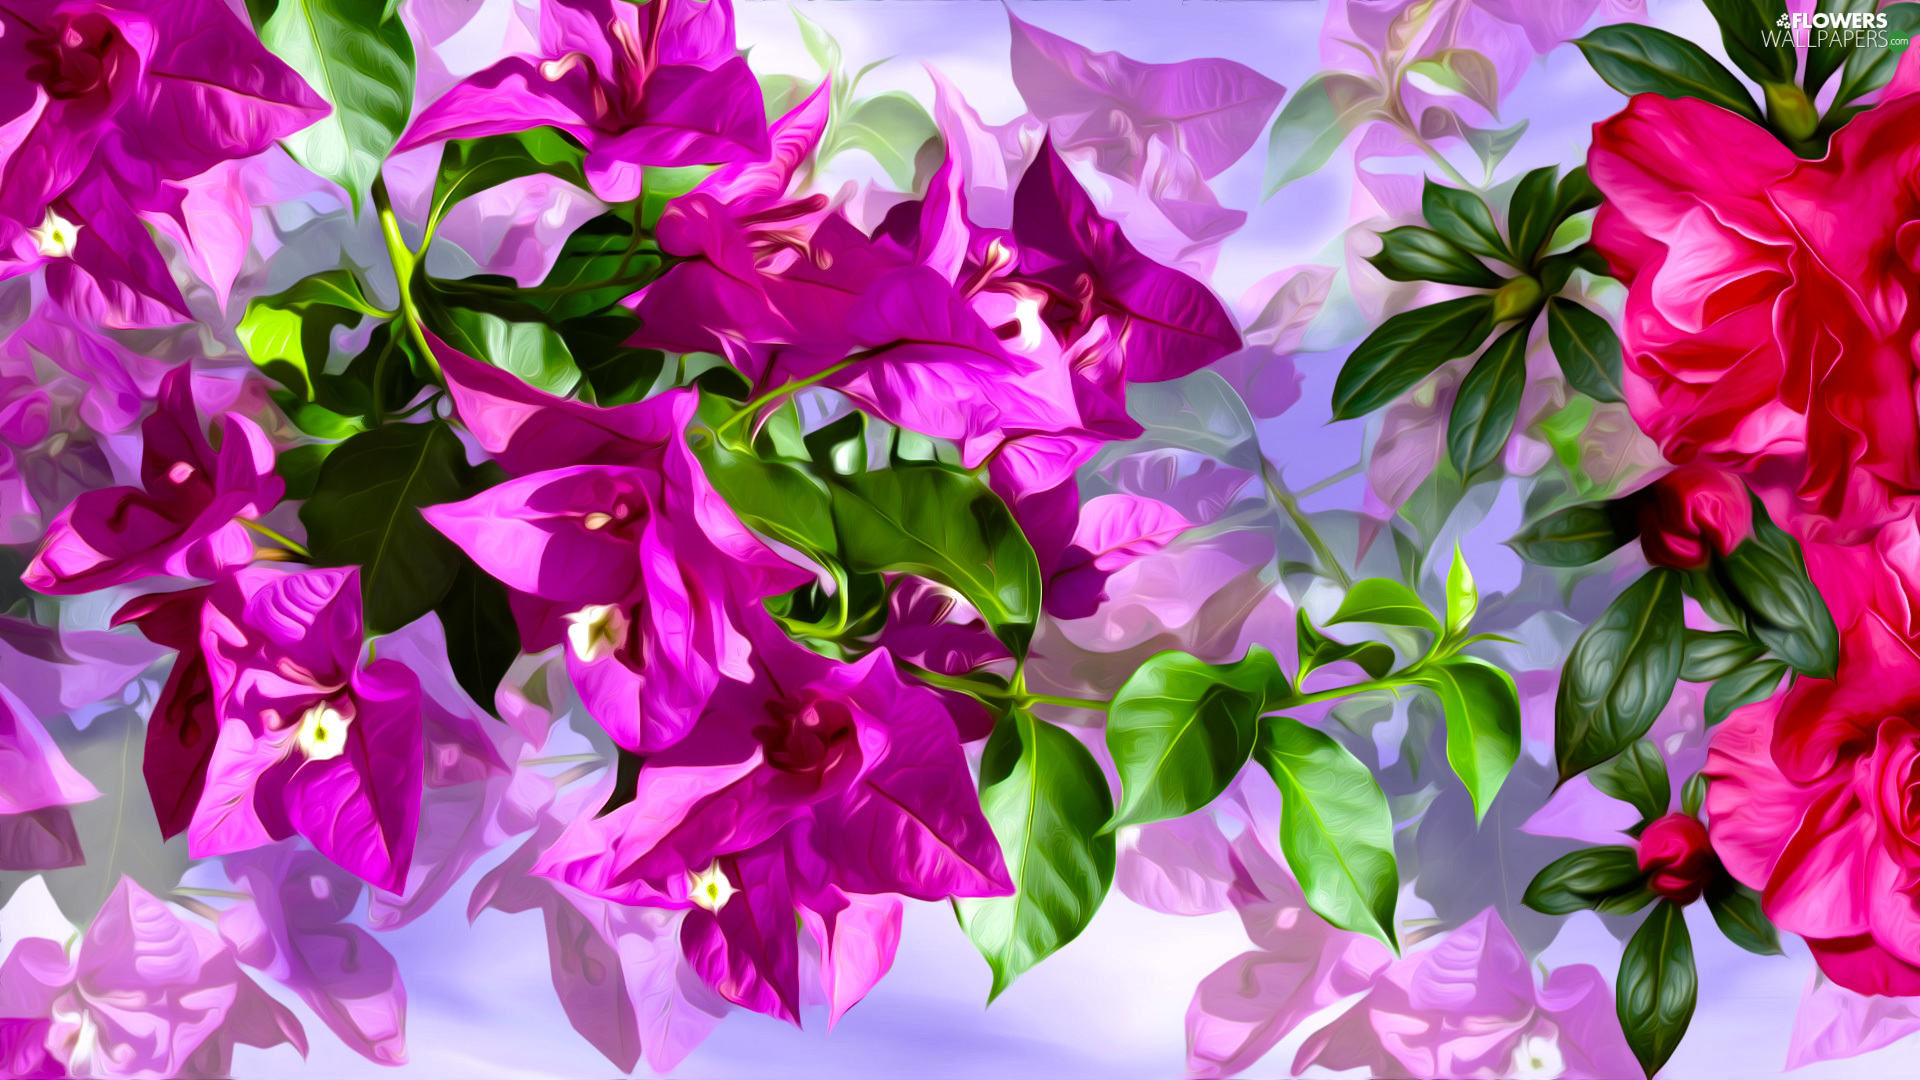 Pink, Bougainvillea, graphics, Flowers